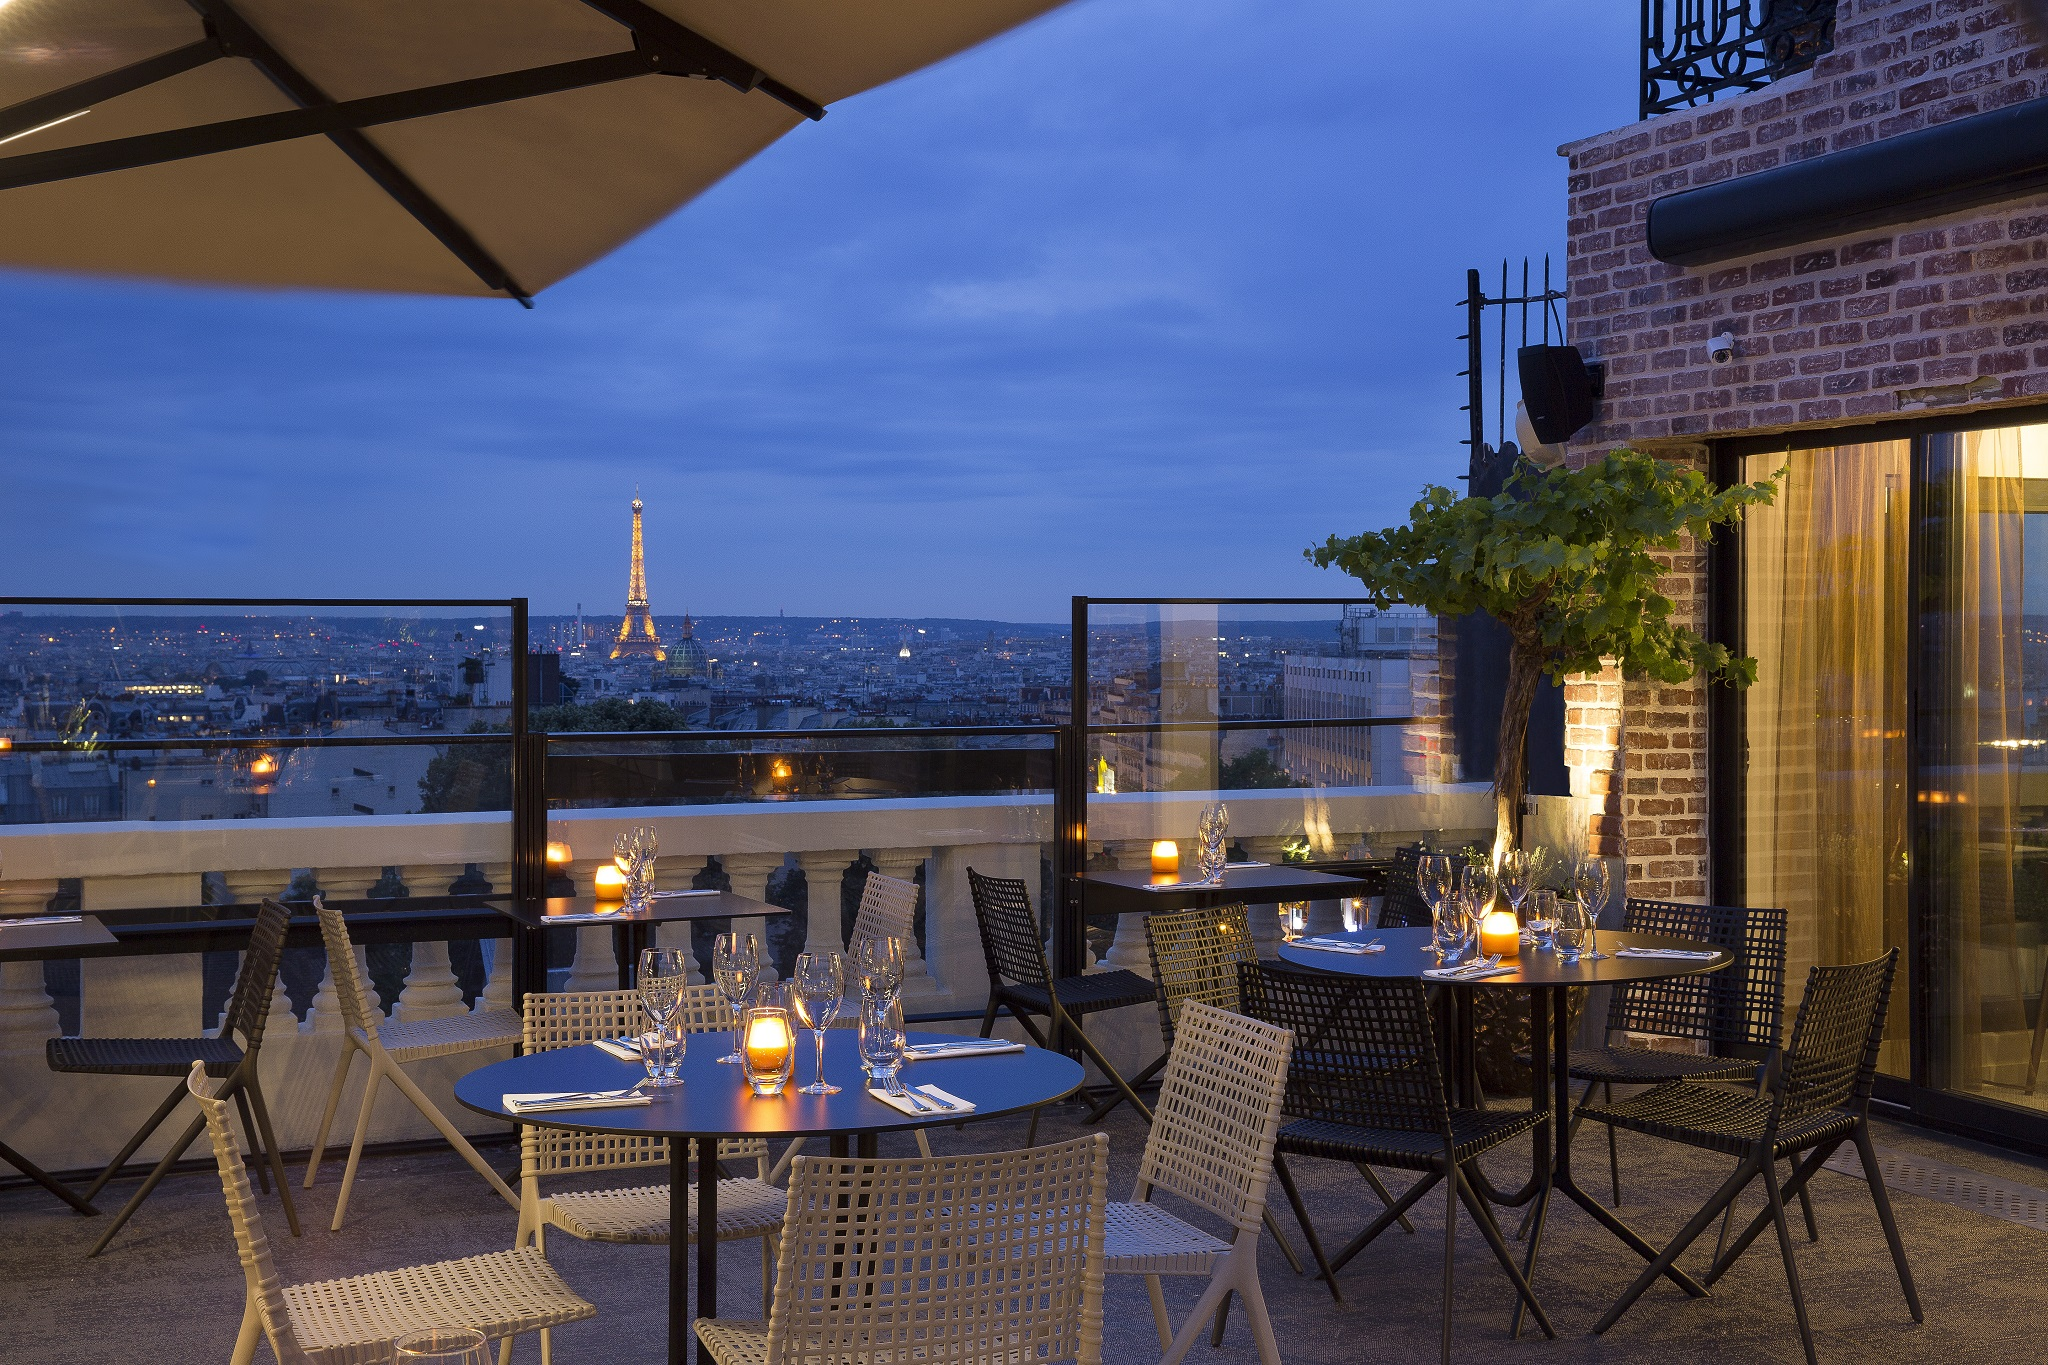 Best Of Terrasse Paris The Best Rooftop Bars In Paris